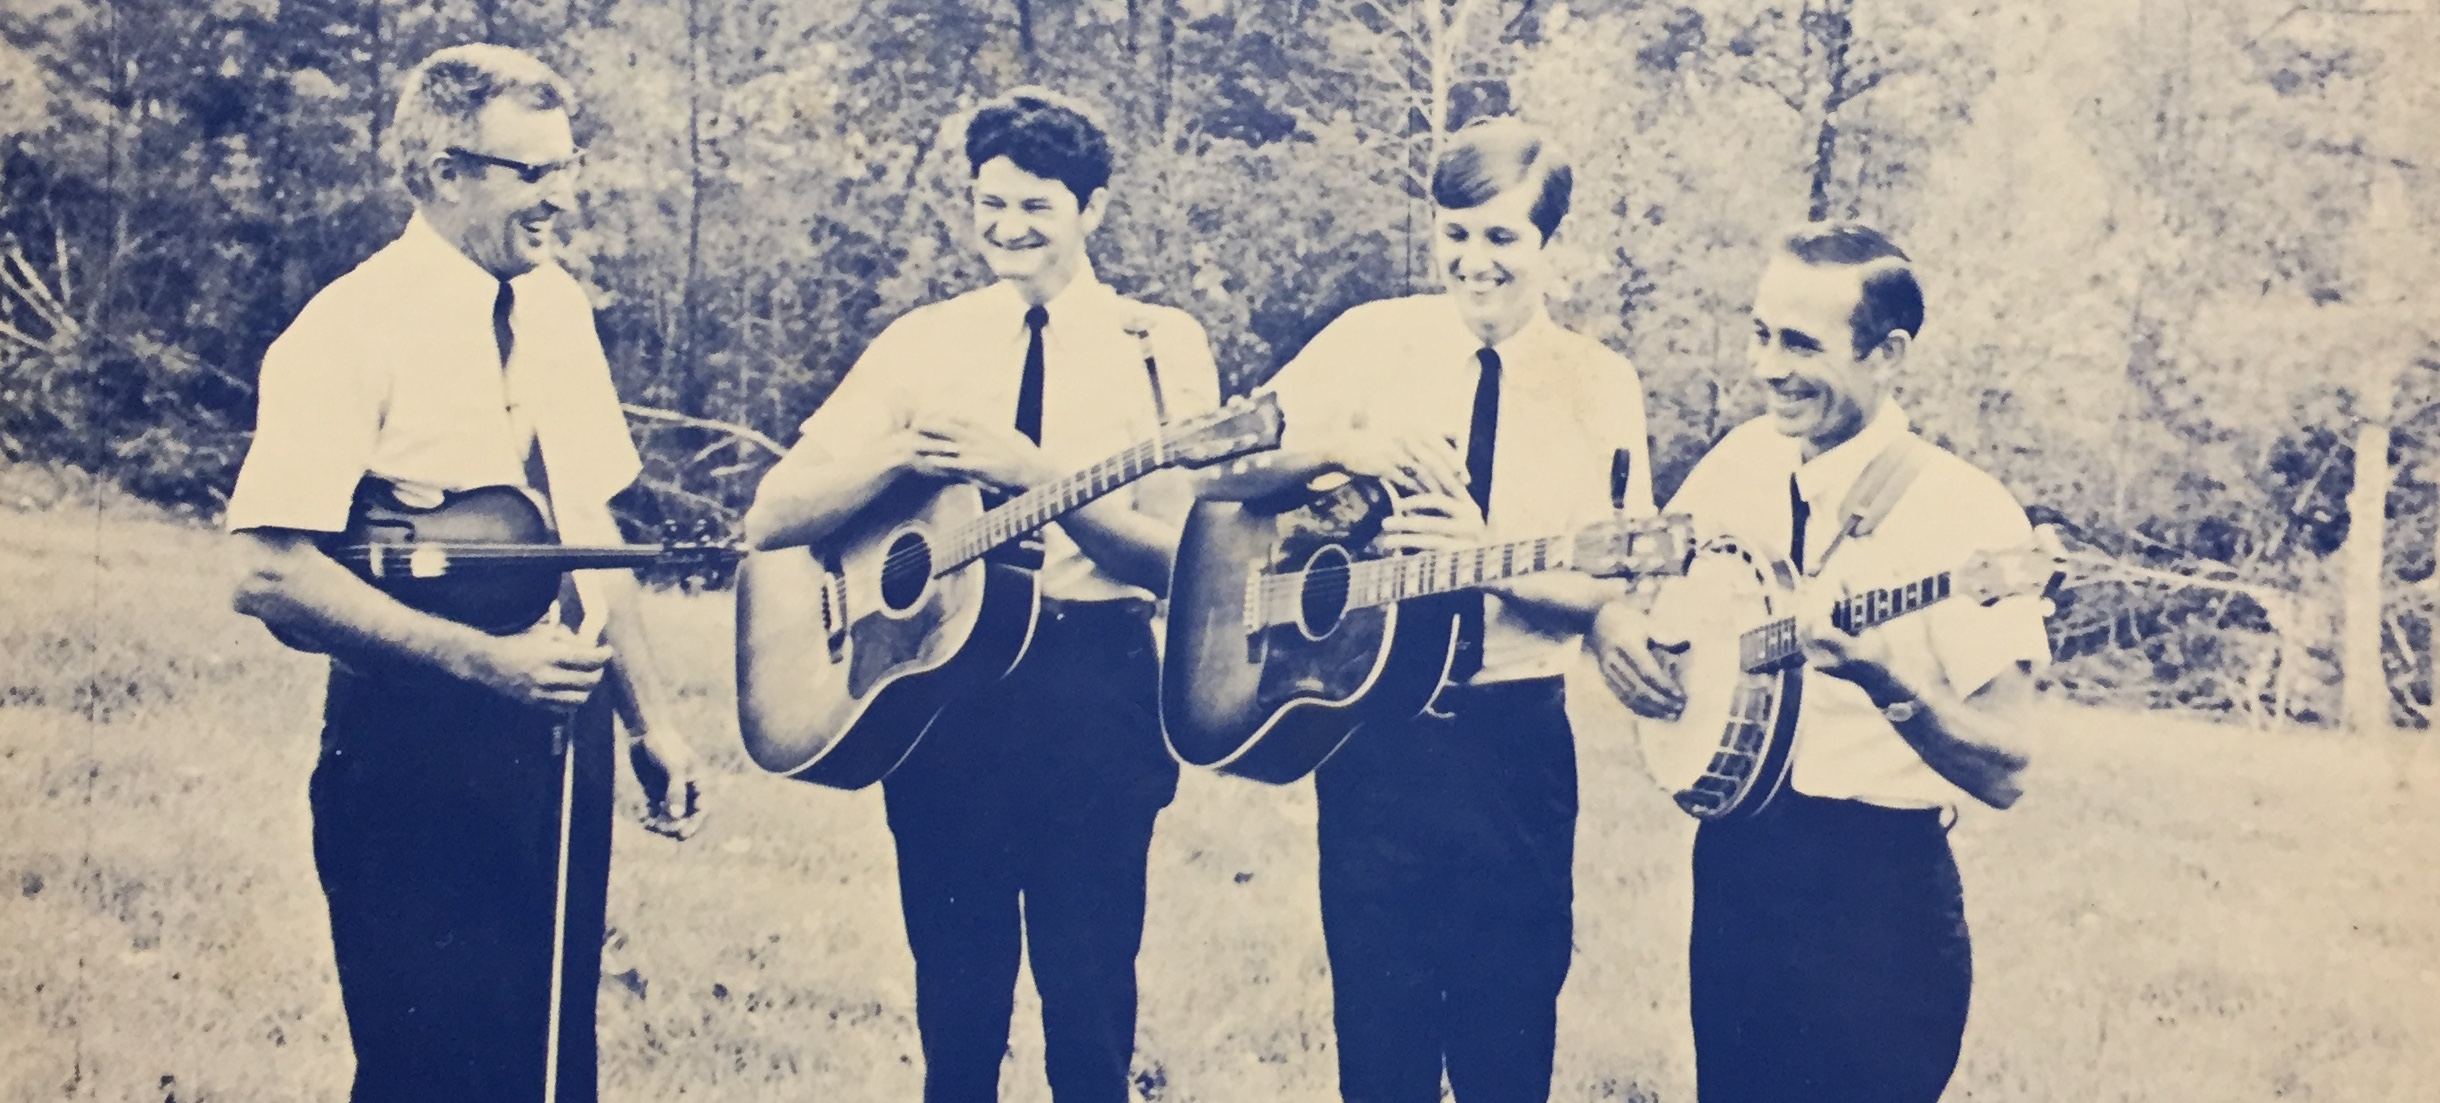 Caption: Earnest East (far left) is one of the featured musicians on this Across the Blue Ridge episode. The award-wining Surry County, NC player (1916-2000) was widely known, with his band The Pine Ridge Boys (L-R Earnest East, Mac Snow, Scotty East, Gilmer Woodr, Credit: Paul Brown Collection